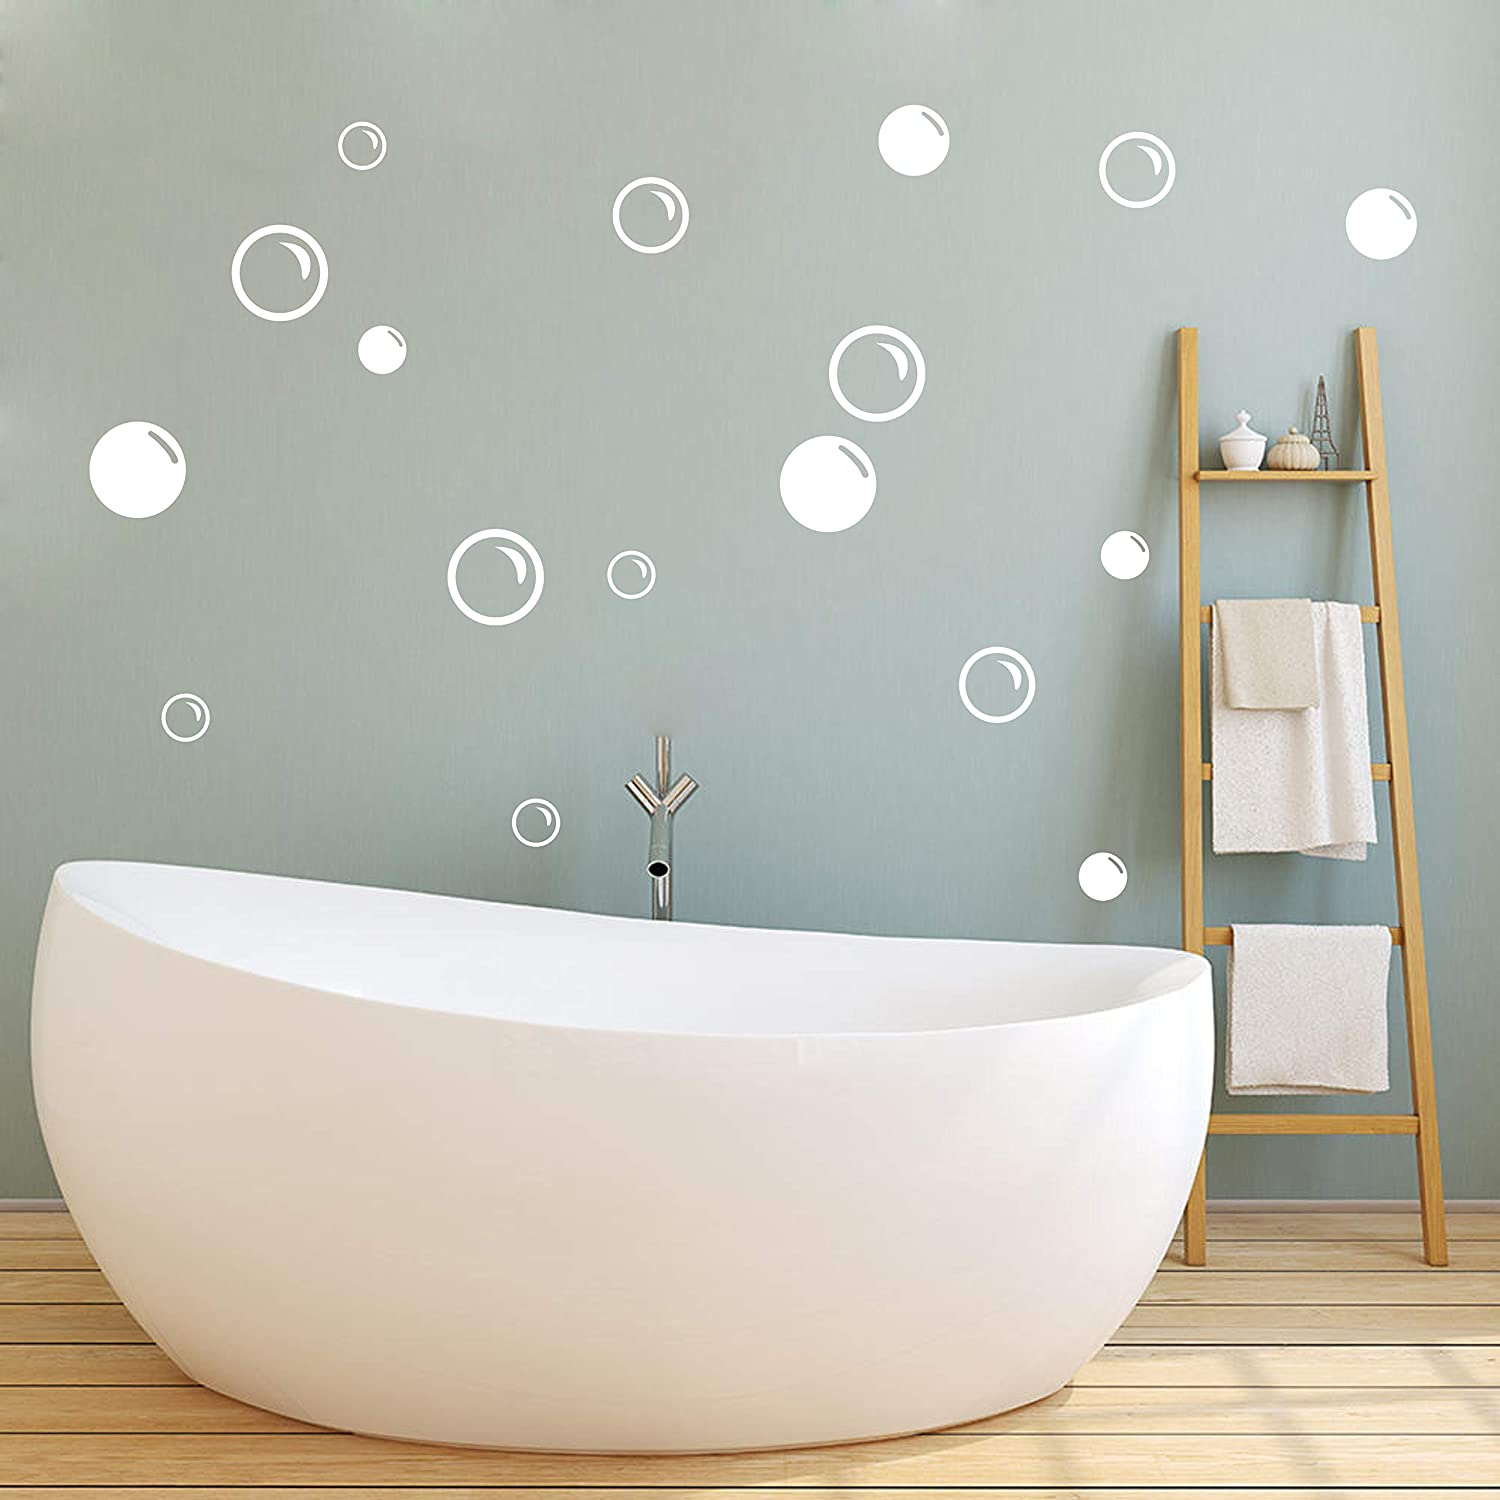 90 Large Soap Bubbles Wall Decals, Bathroom Decals, Wall Art, Vinyl Stivkers for Bathroom, Bedroom, Nursery Decor A35 (White)